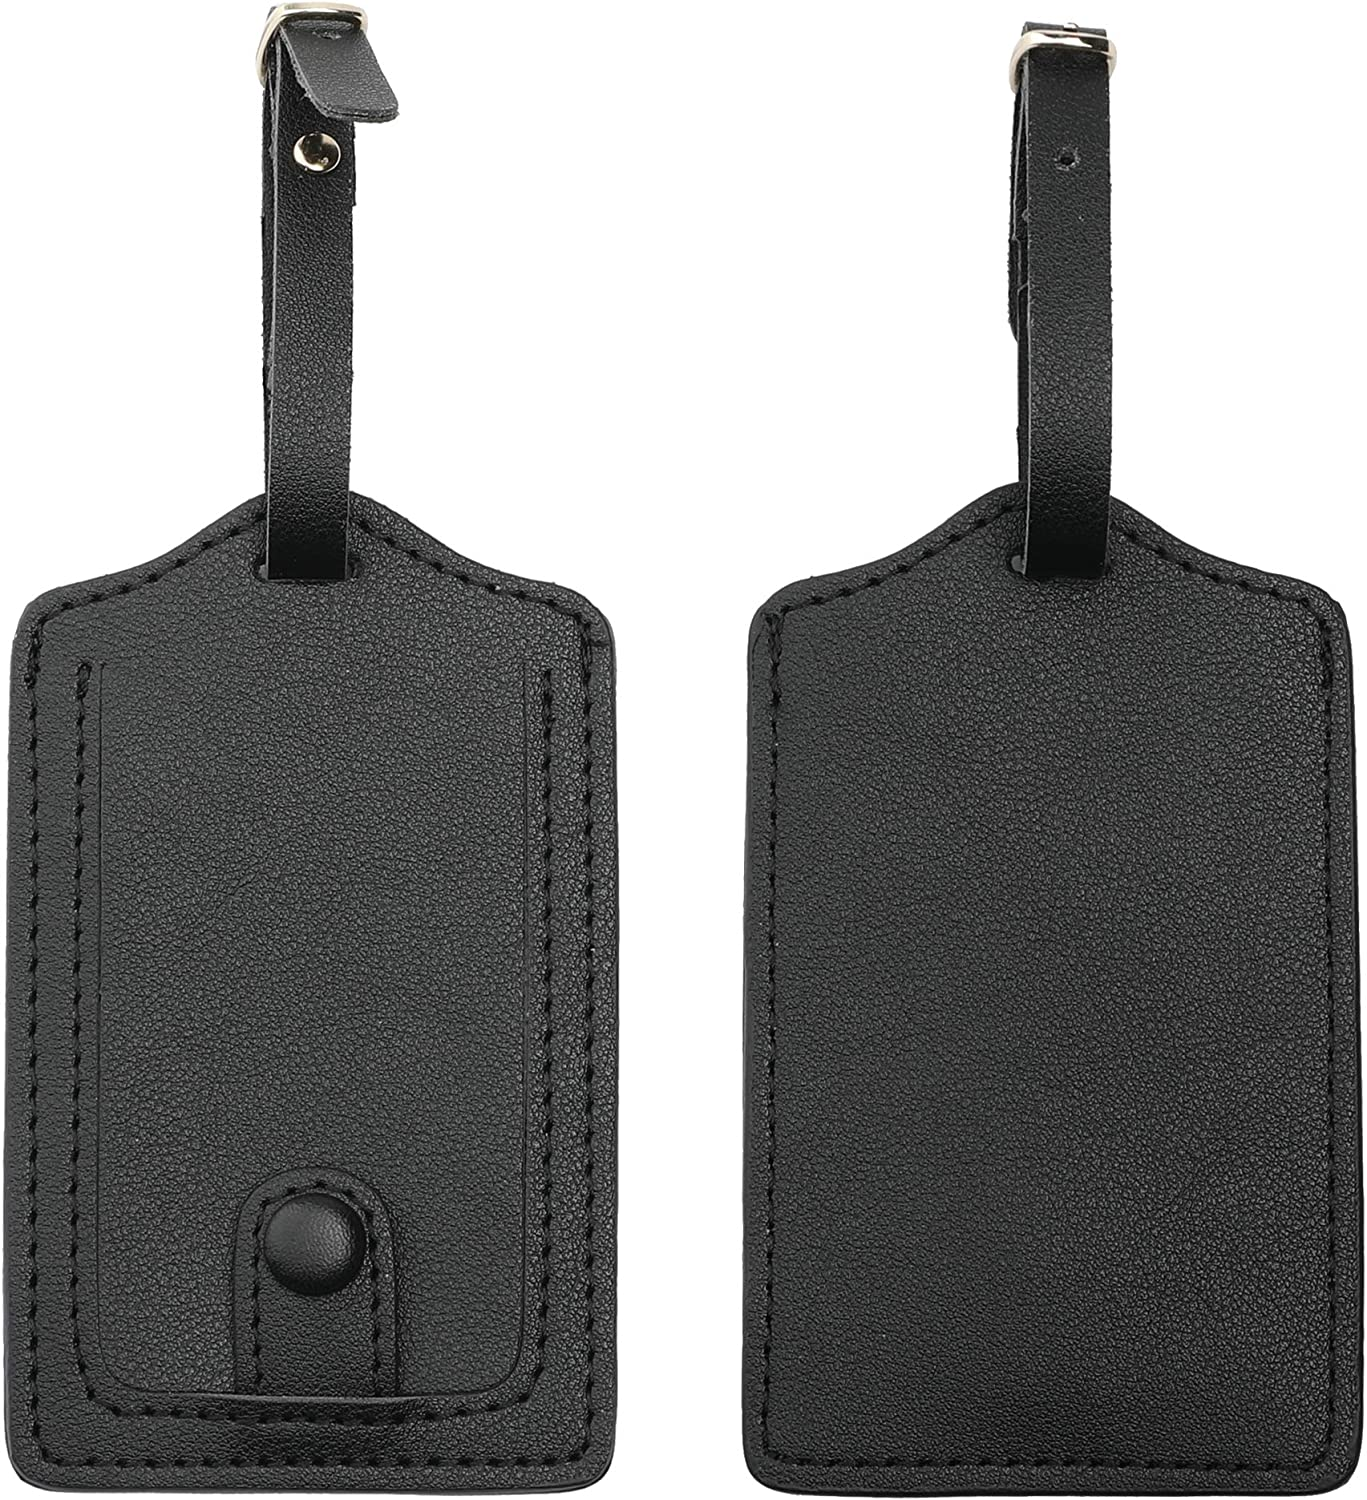 Document Leather Luggage Tags Suitcase Tag Travel Bag Labels With Privacy Cover For Men Women 2 Pack 4 Pack